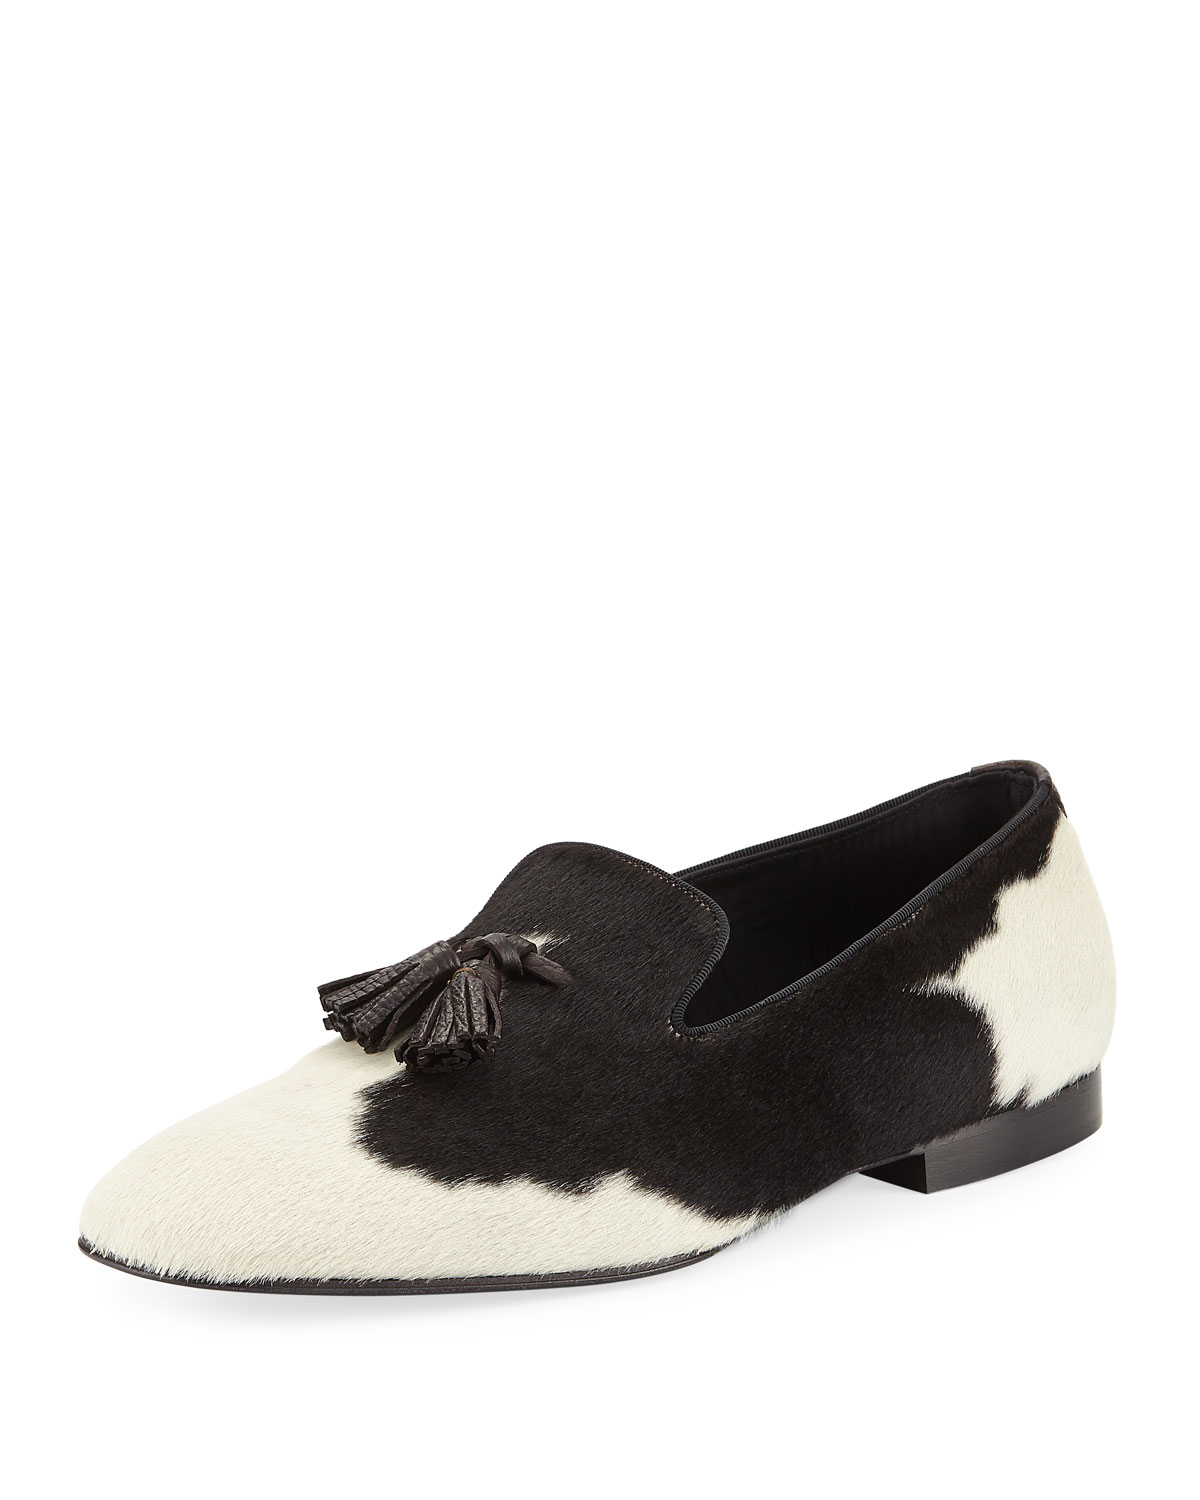 37be68f9b8a TOM FORD Calf Hair Tassel-Front Loafer